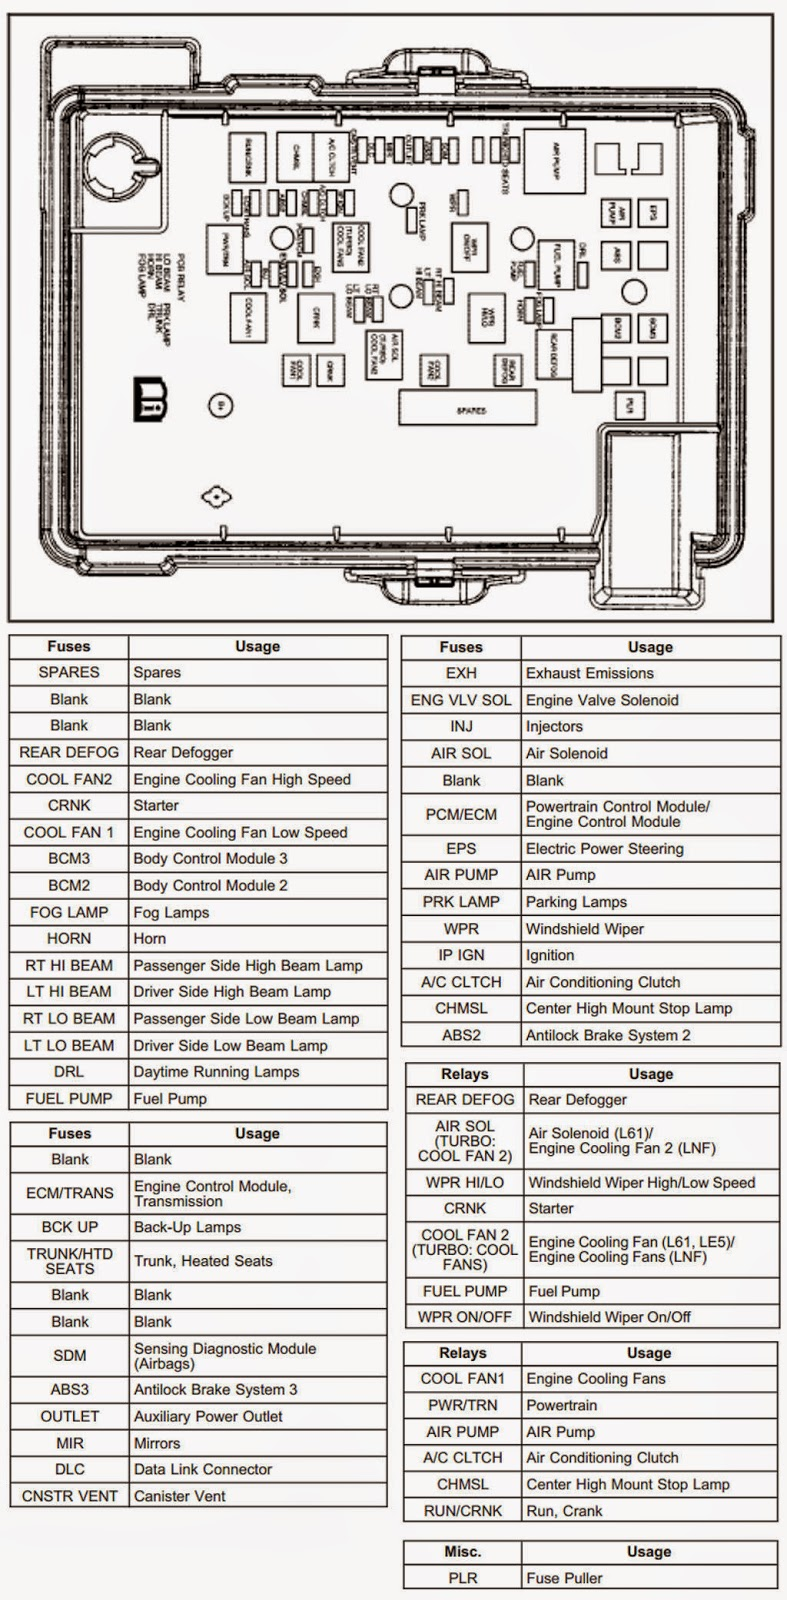 power window switch wiring diagram 2001 chevy cavalier power window switch wiring diagram for 2001 chevy cavalier universal power window switch wiring diagram 5 pin